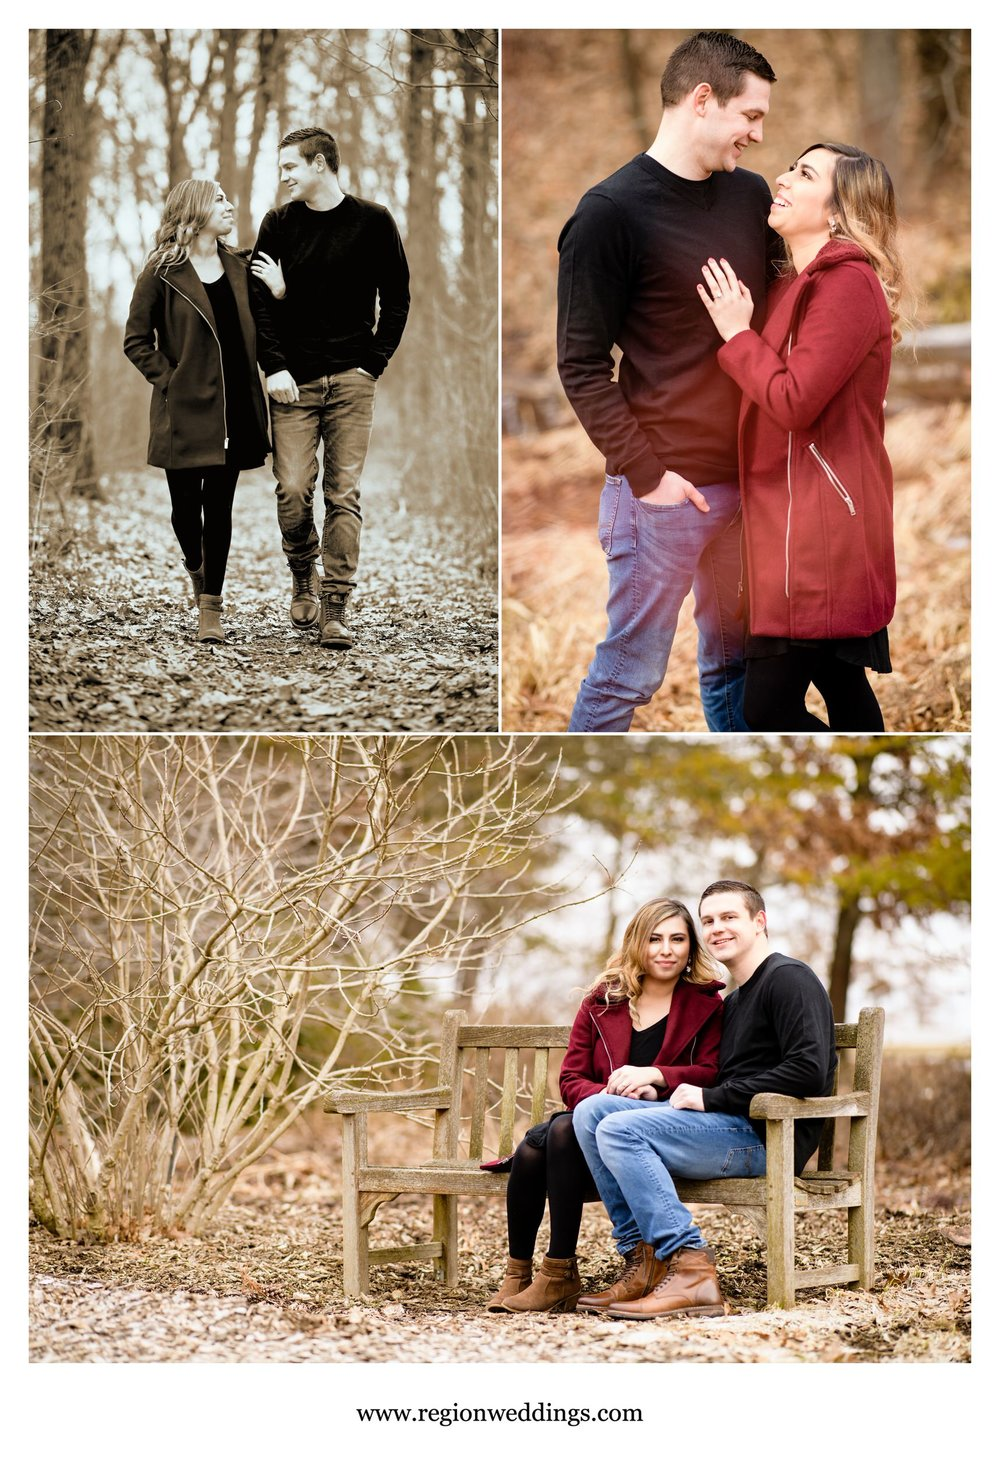 A young couple in love during their winter engagement photo session.